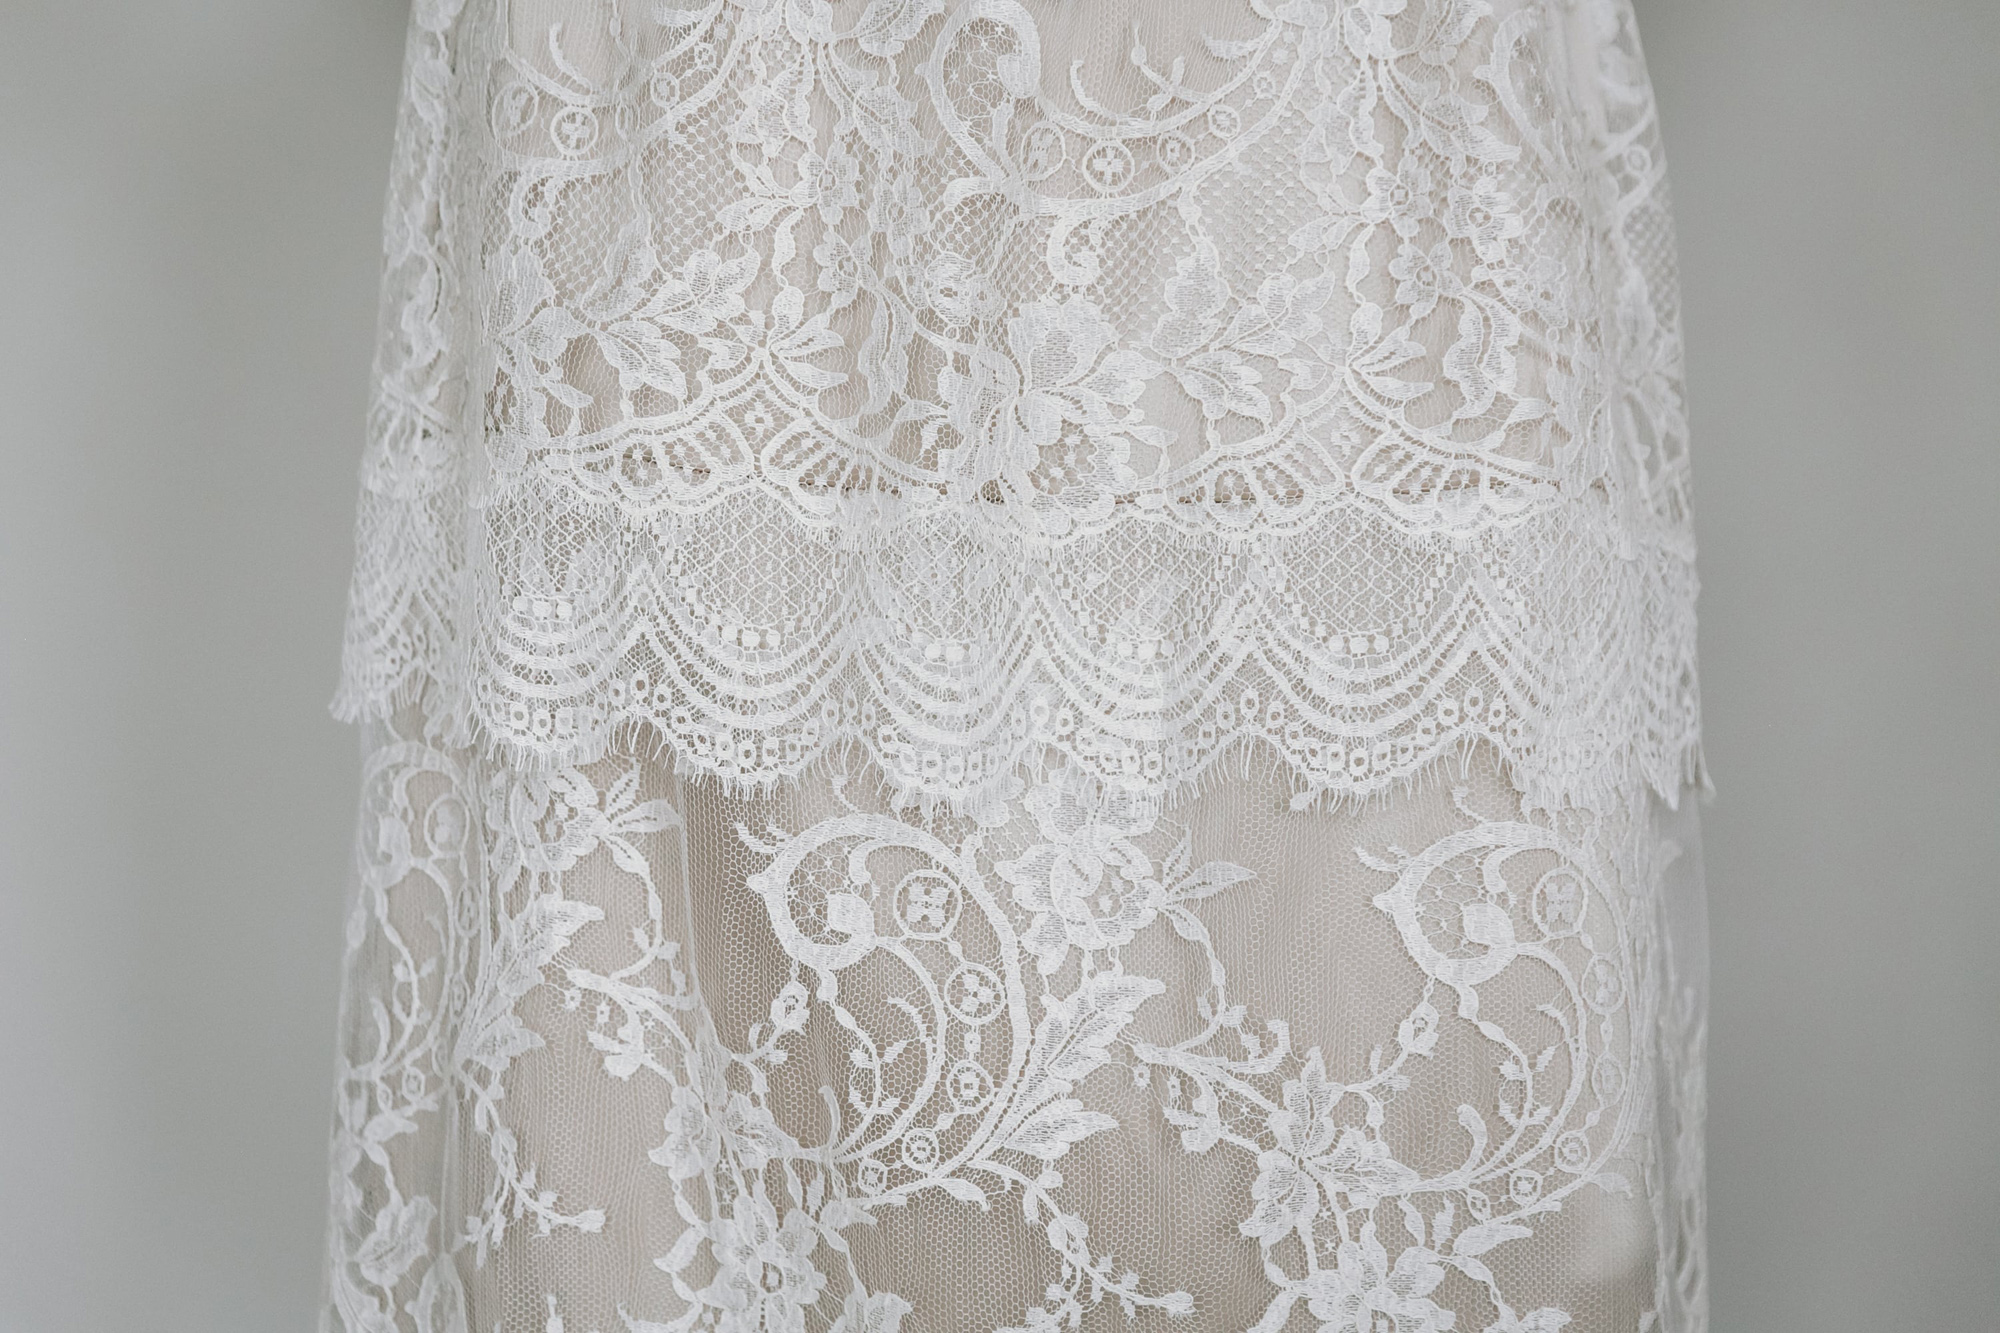 Kate-Beaumont-Sheffield-Wild-Lupin-Bohemian-Lace-Wedding-Gown-Tiered-Skirt-5.jpg